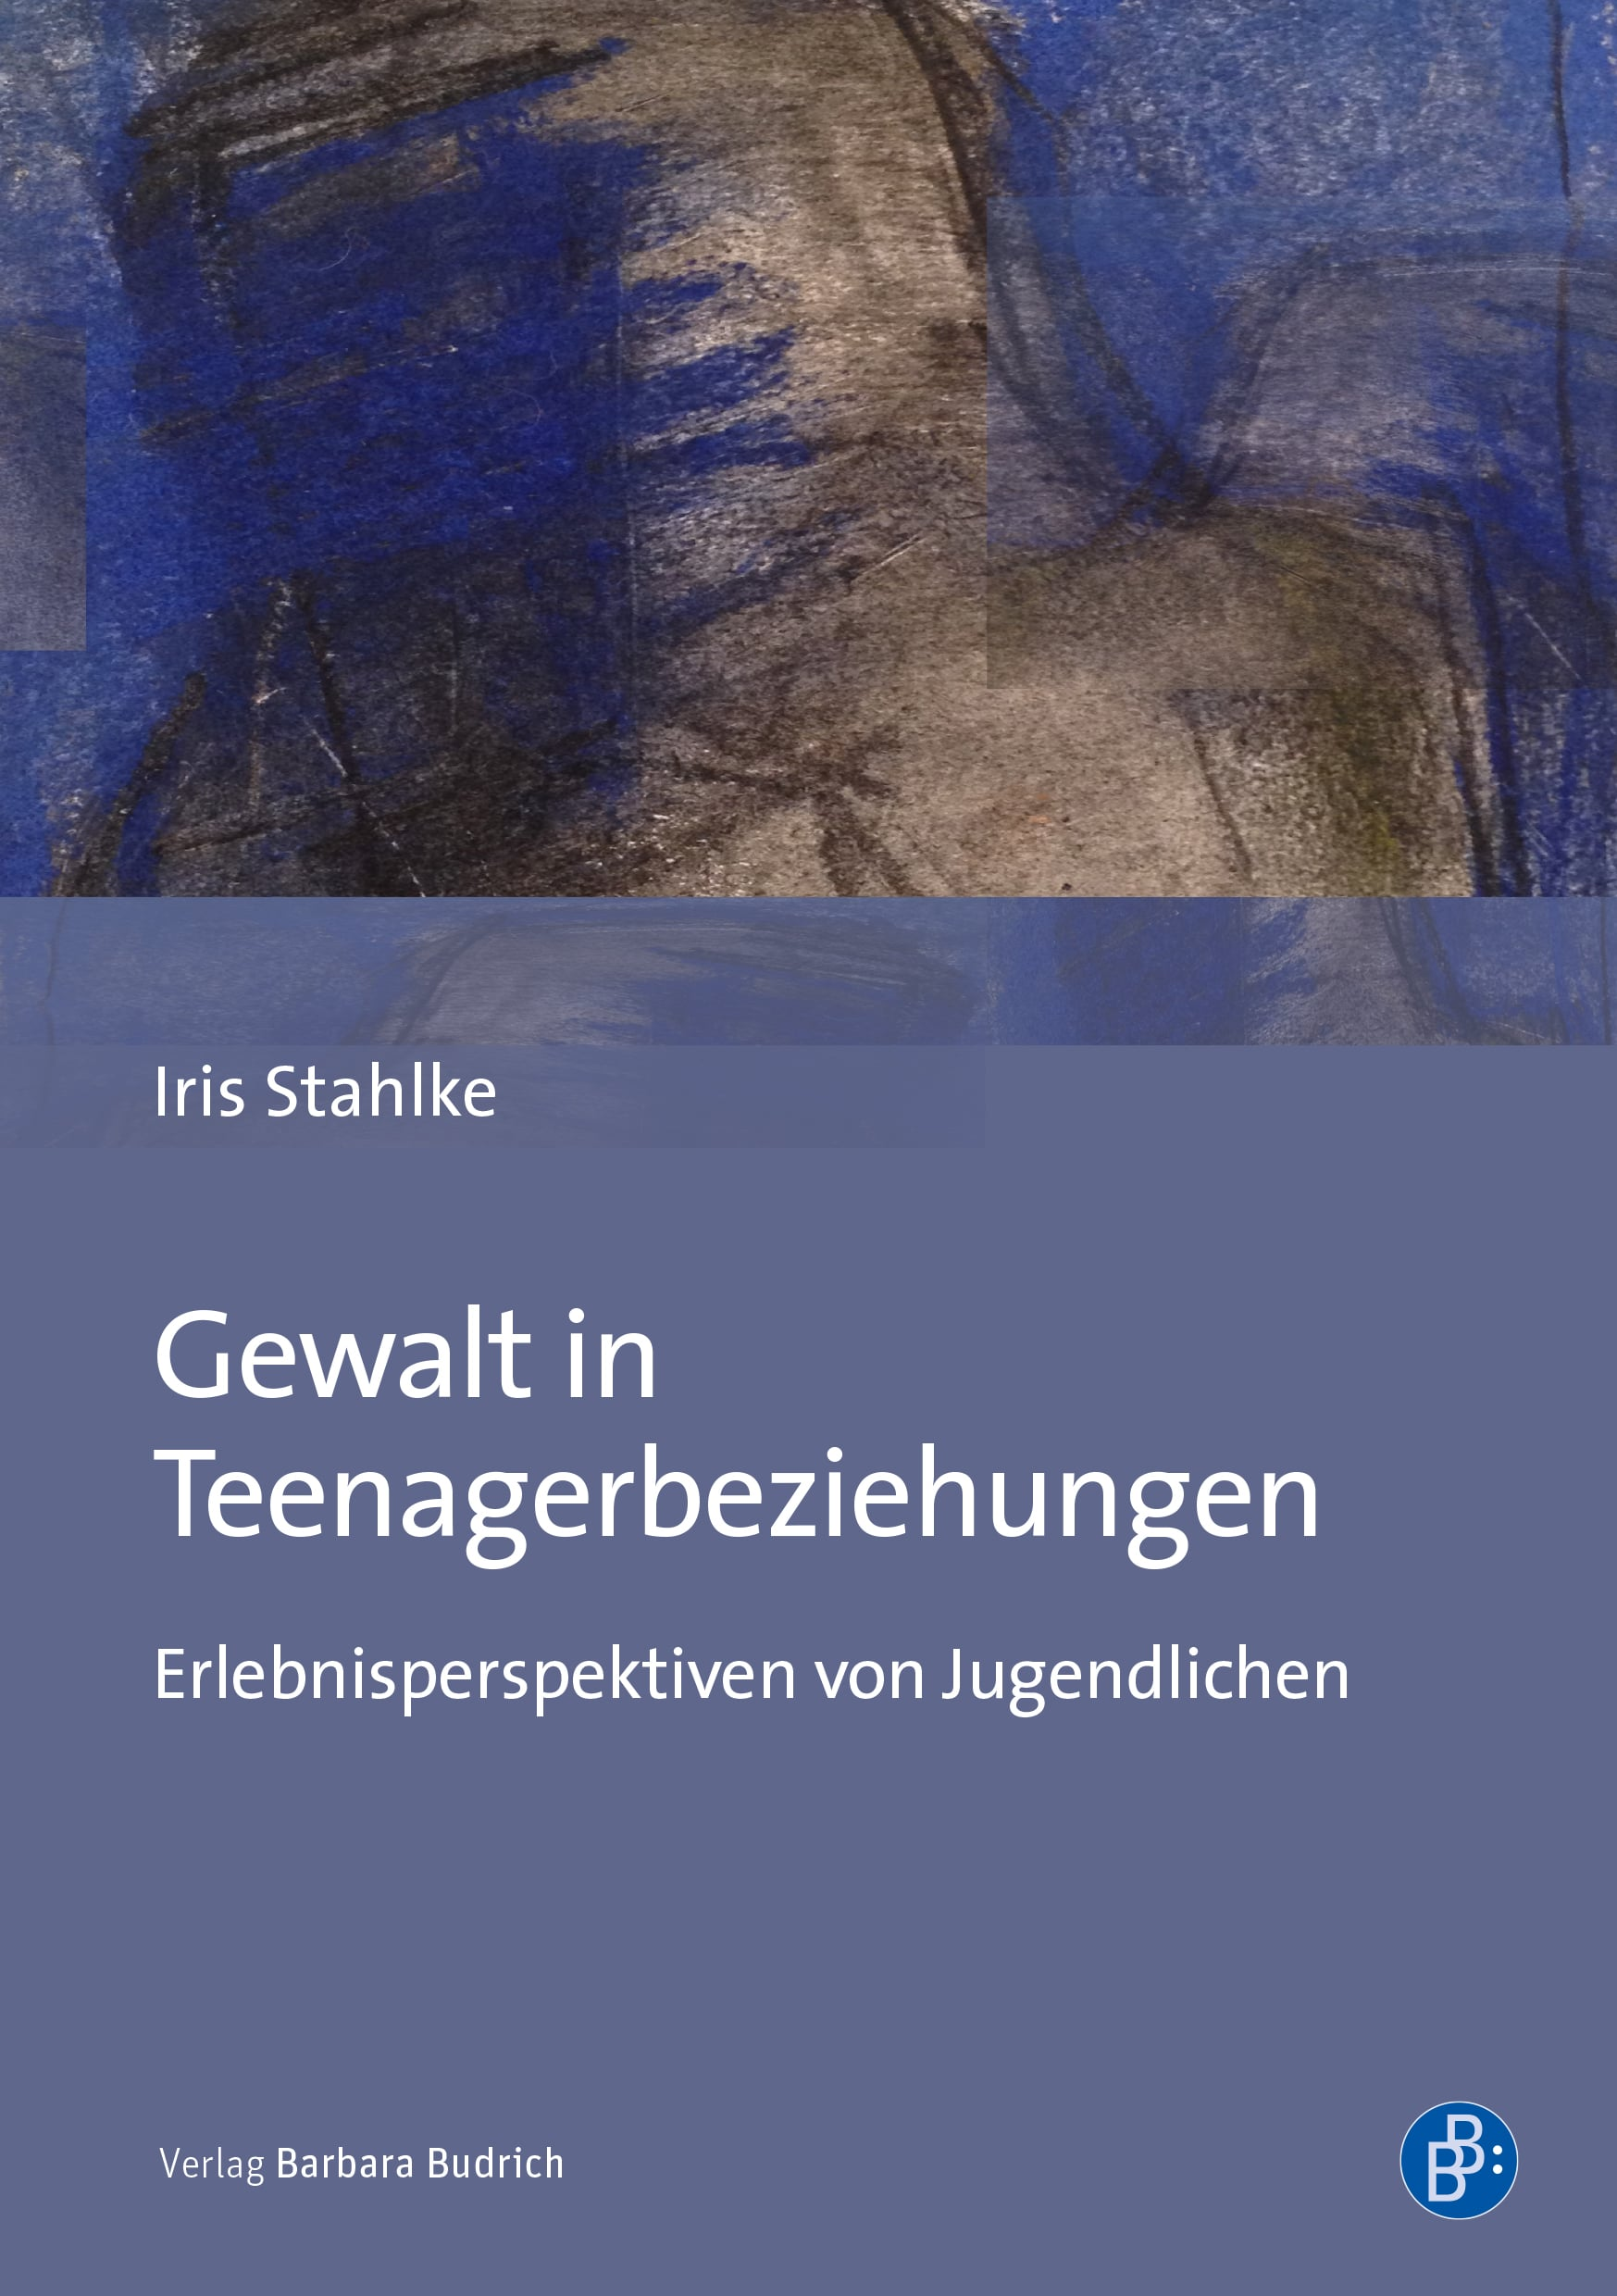 Gewalt in Teenagerbeziehungen